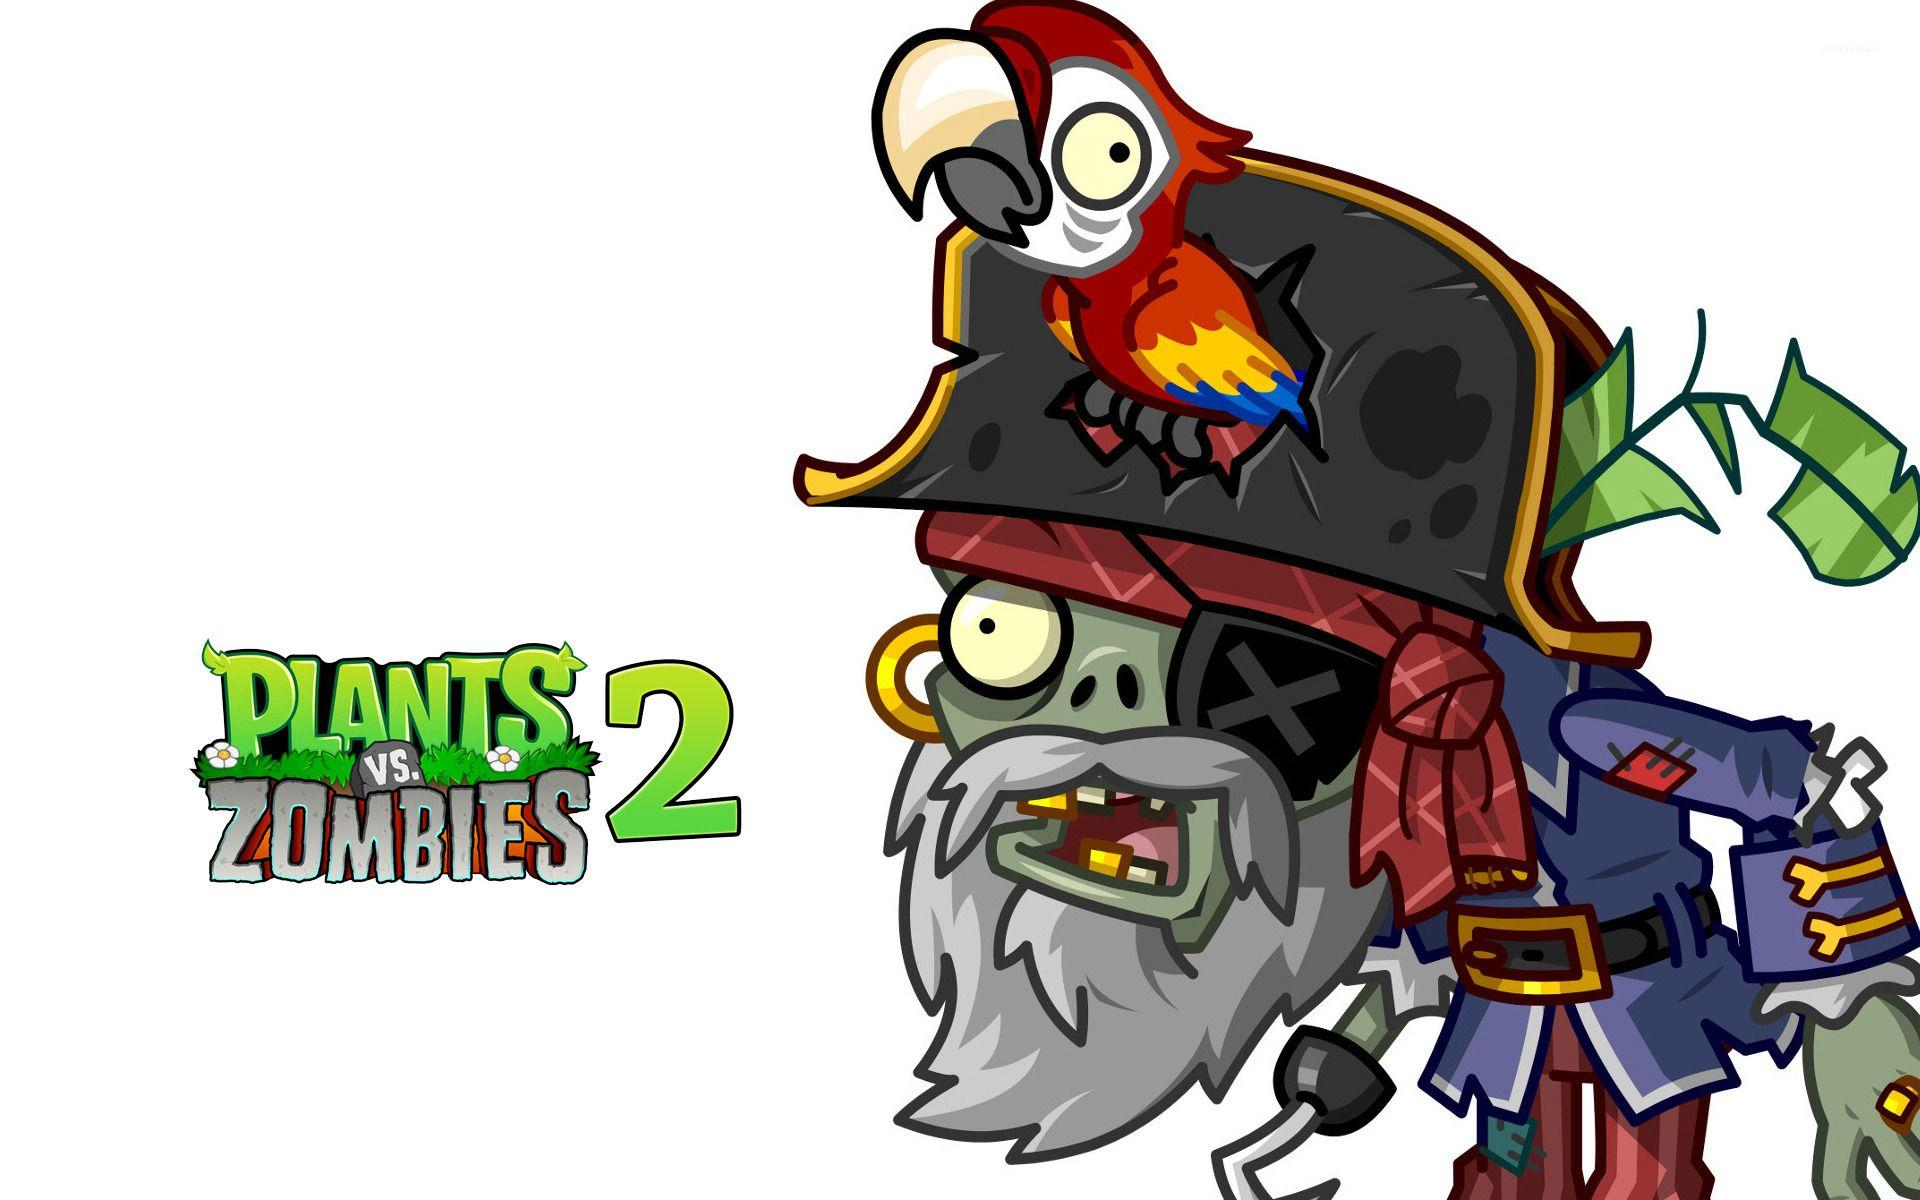 Plant Vs Zombies 2 Wallpaper: Plants Vs Zombies 2: It's About Time Wallpapers